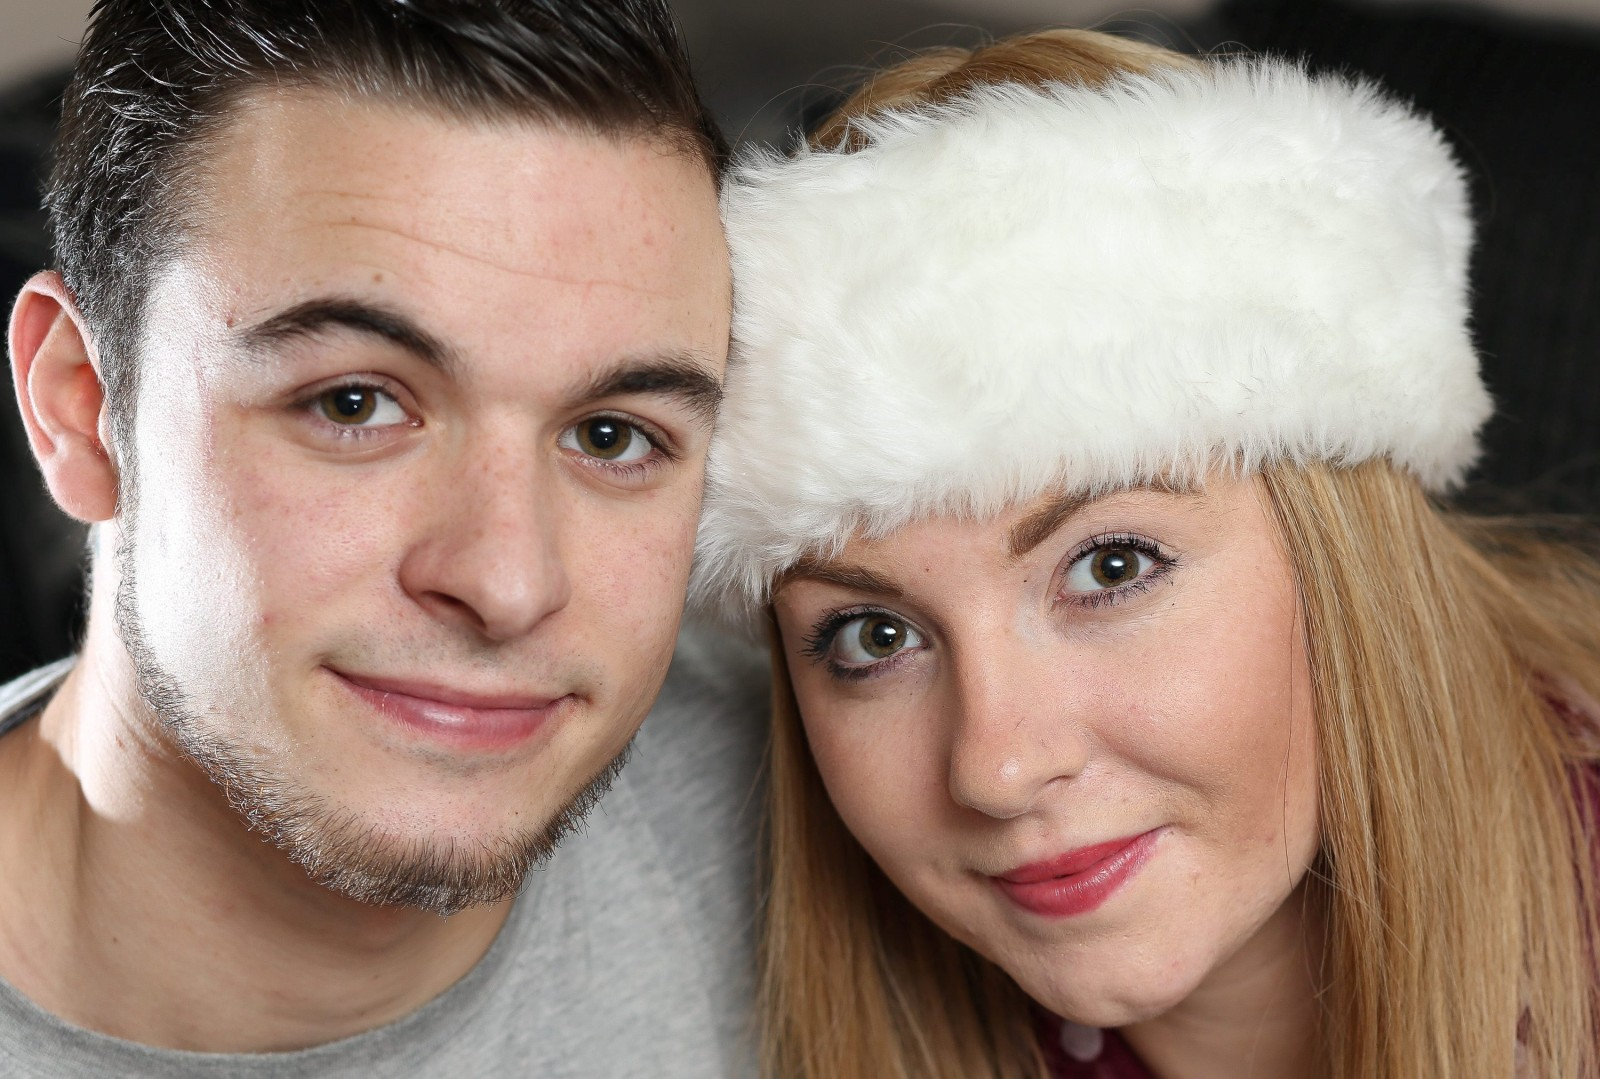 'We're a match made in heaven' Tourette's sufferer finds love with deaf boyfriend